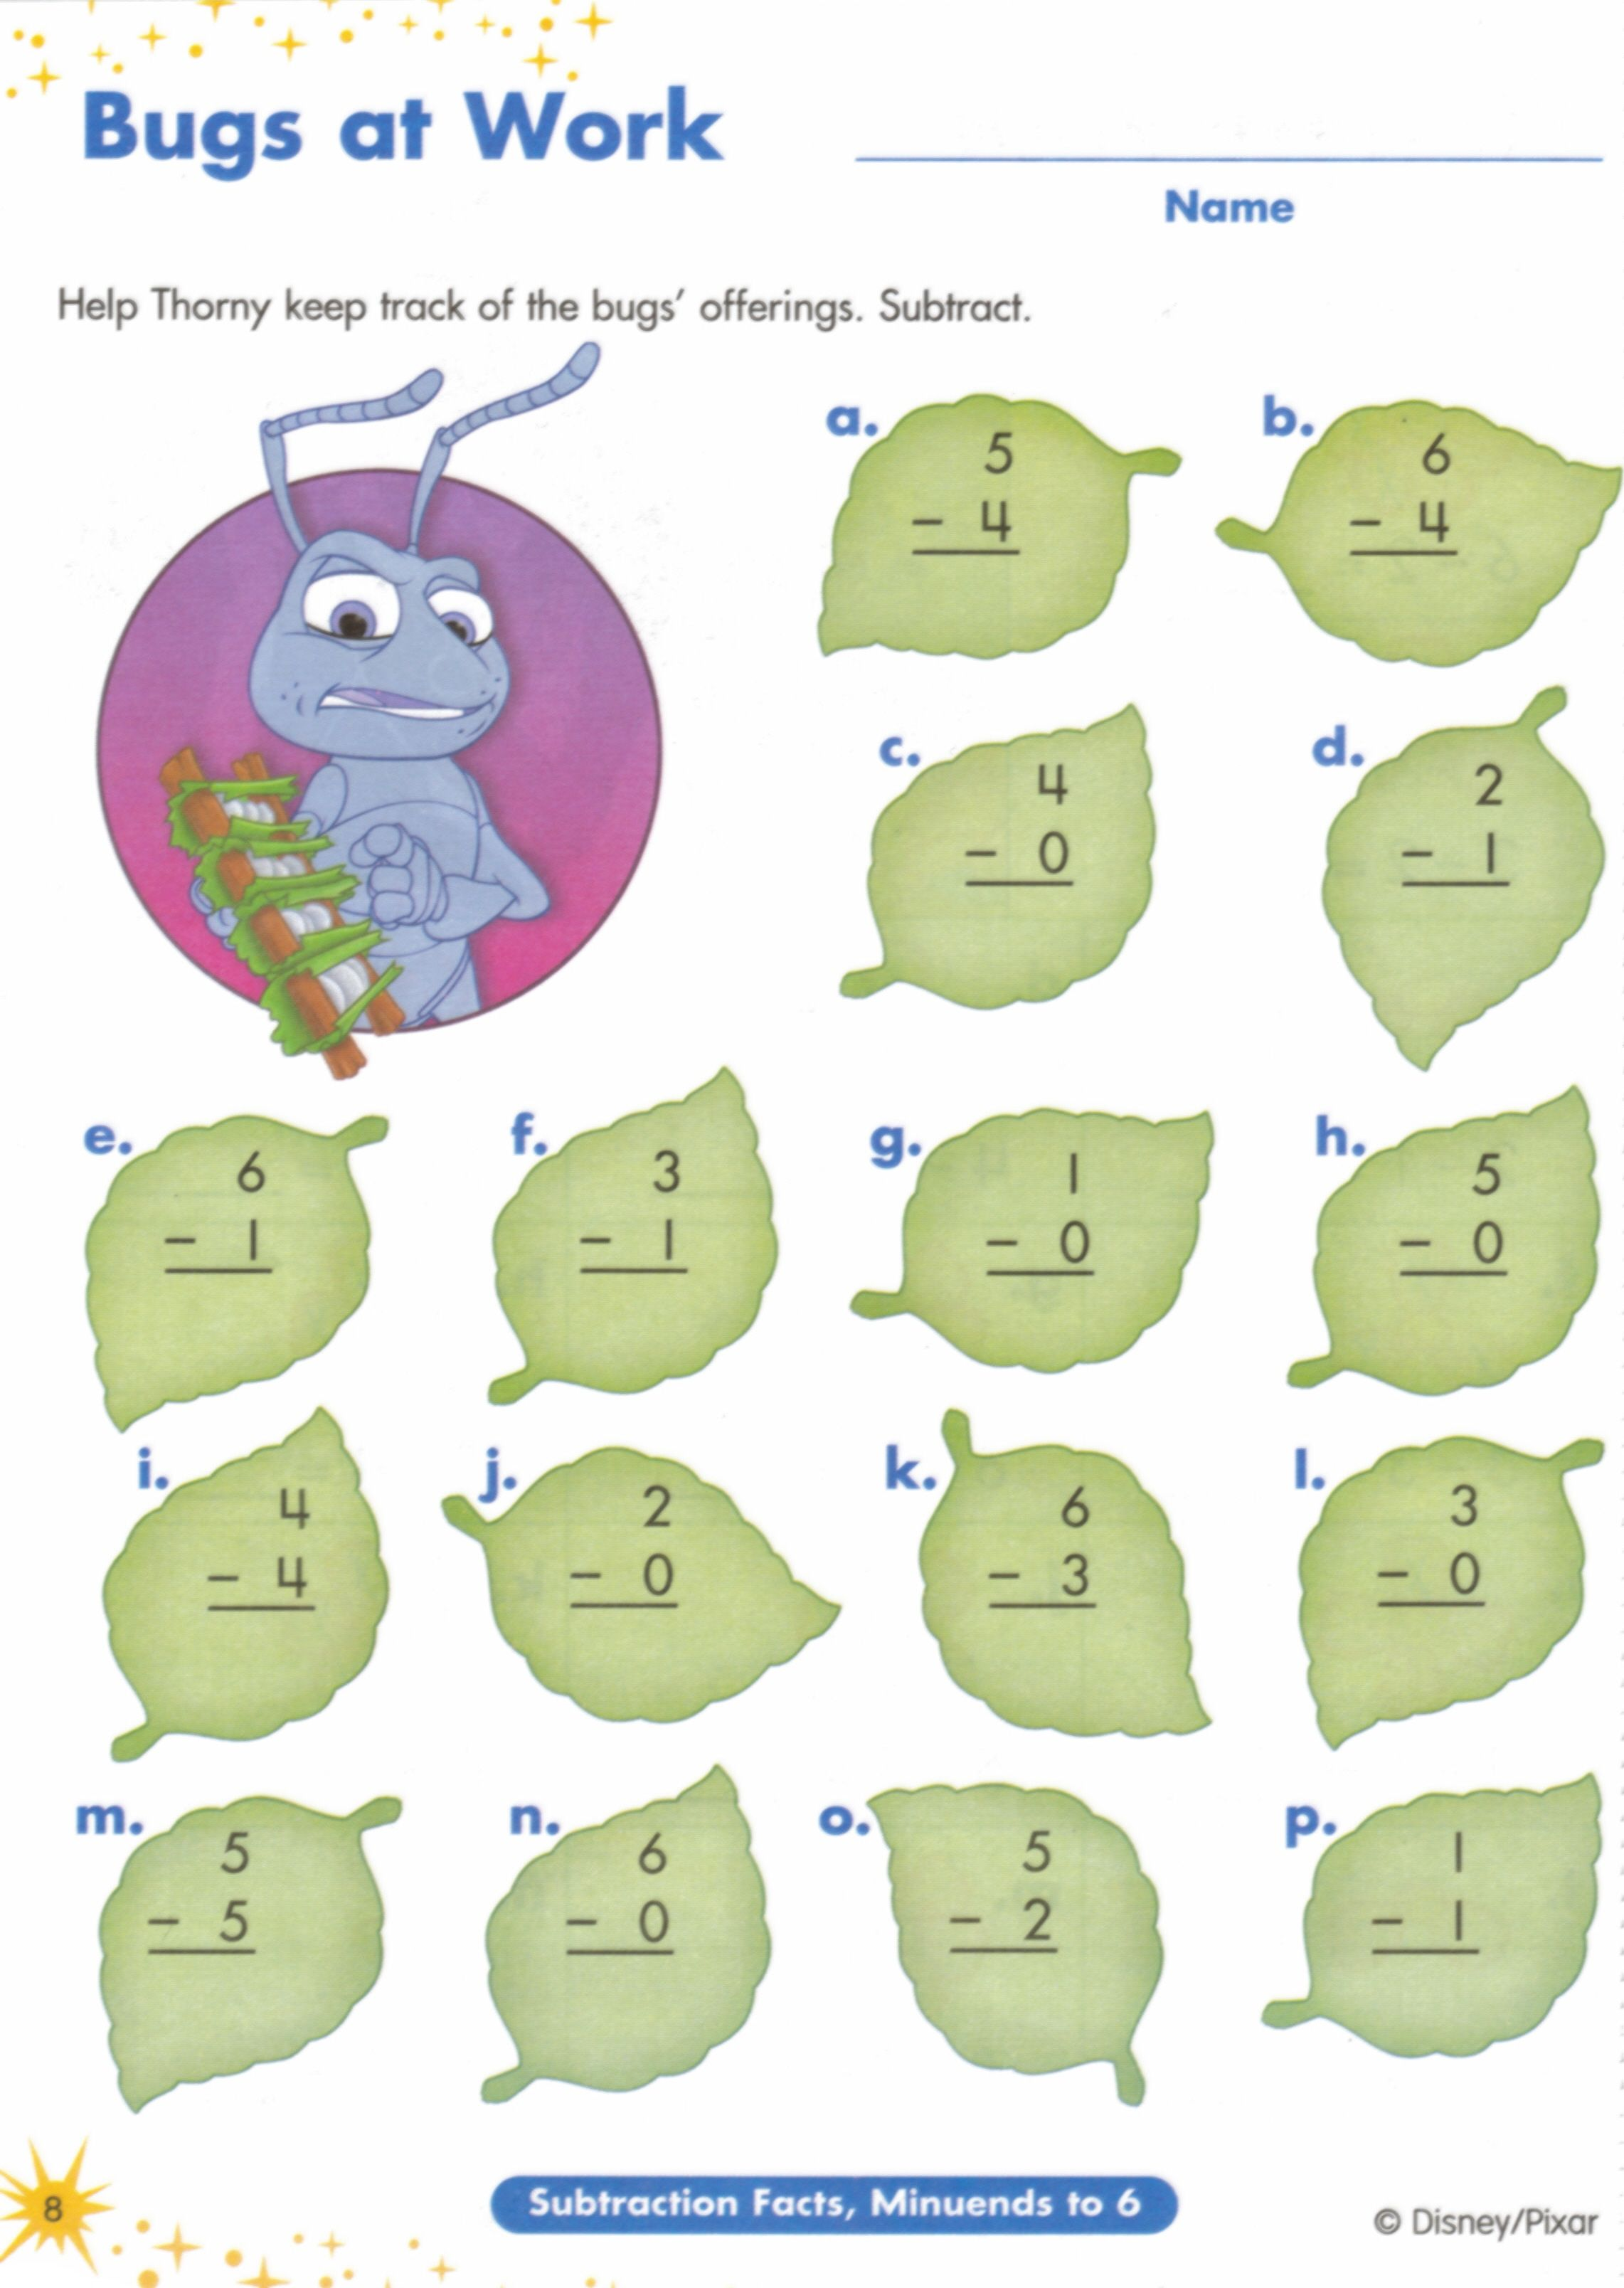 Weirdmailus  Remarkable  Images About Worksheets On Pinterest  Fun Facts For Kids  With Great  Images About Worksheets On Pinterest  Fun Facts For Kids Earth Day Worksheets And Jungles With Extraordinary Fraction Shading Worksheets Also Kumon Worksheets Free Download In Addition Multiplication For Kindergarten Worksheets And Maths Wizard Worksheets As Well As Free Grade  Math Worksheets Additionally Class  Maths Worksheets From Pinterestcom With Weirdmailus  Great  Images About Worksheets On Pinterest  Fun Facts For Kids  With Extraordinary  Images About Worksheets On Pinterest  Fun Facts For Kids Earth Day Worksheets And Jungles And Remarkable Fraction Shading Worksheets Also Kumon Worksheets Free Download In Addition Multiplication For Kindergarten Worksheets From Pinterestcom